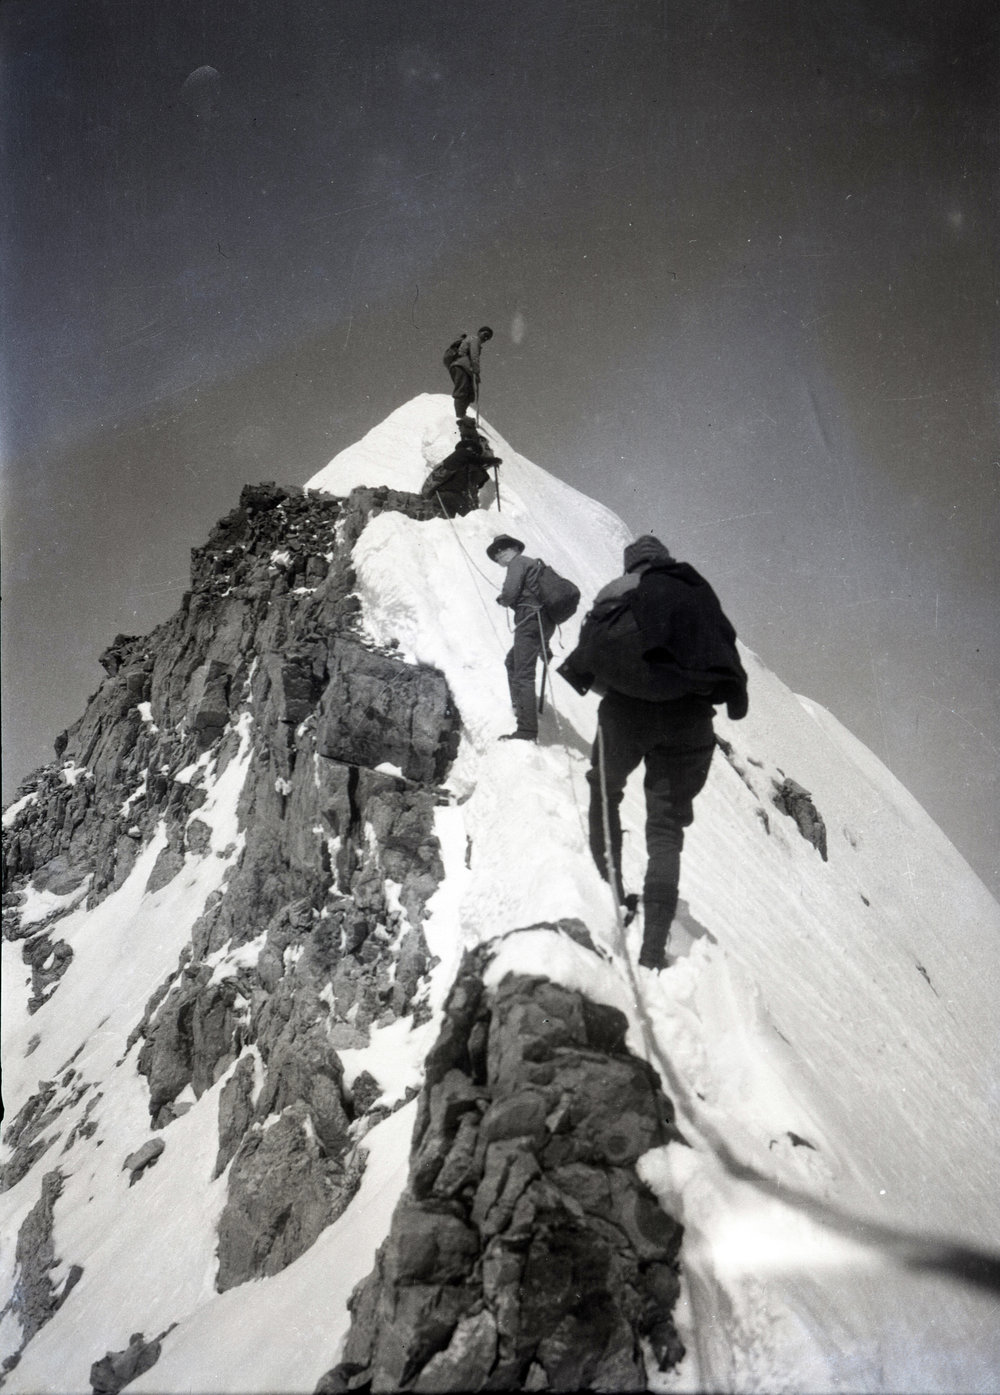 A climbing group summiting Victoria Ridge in Alberta.